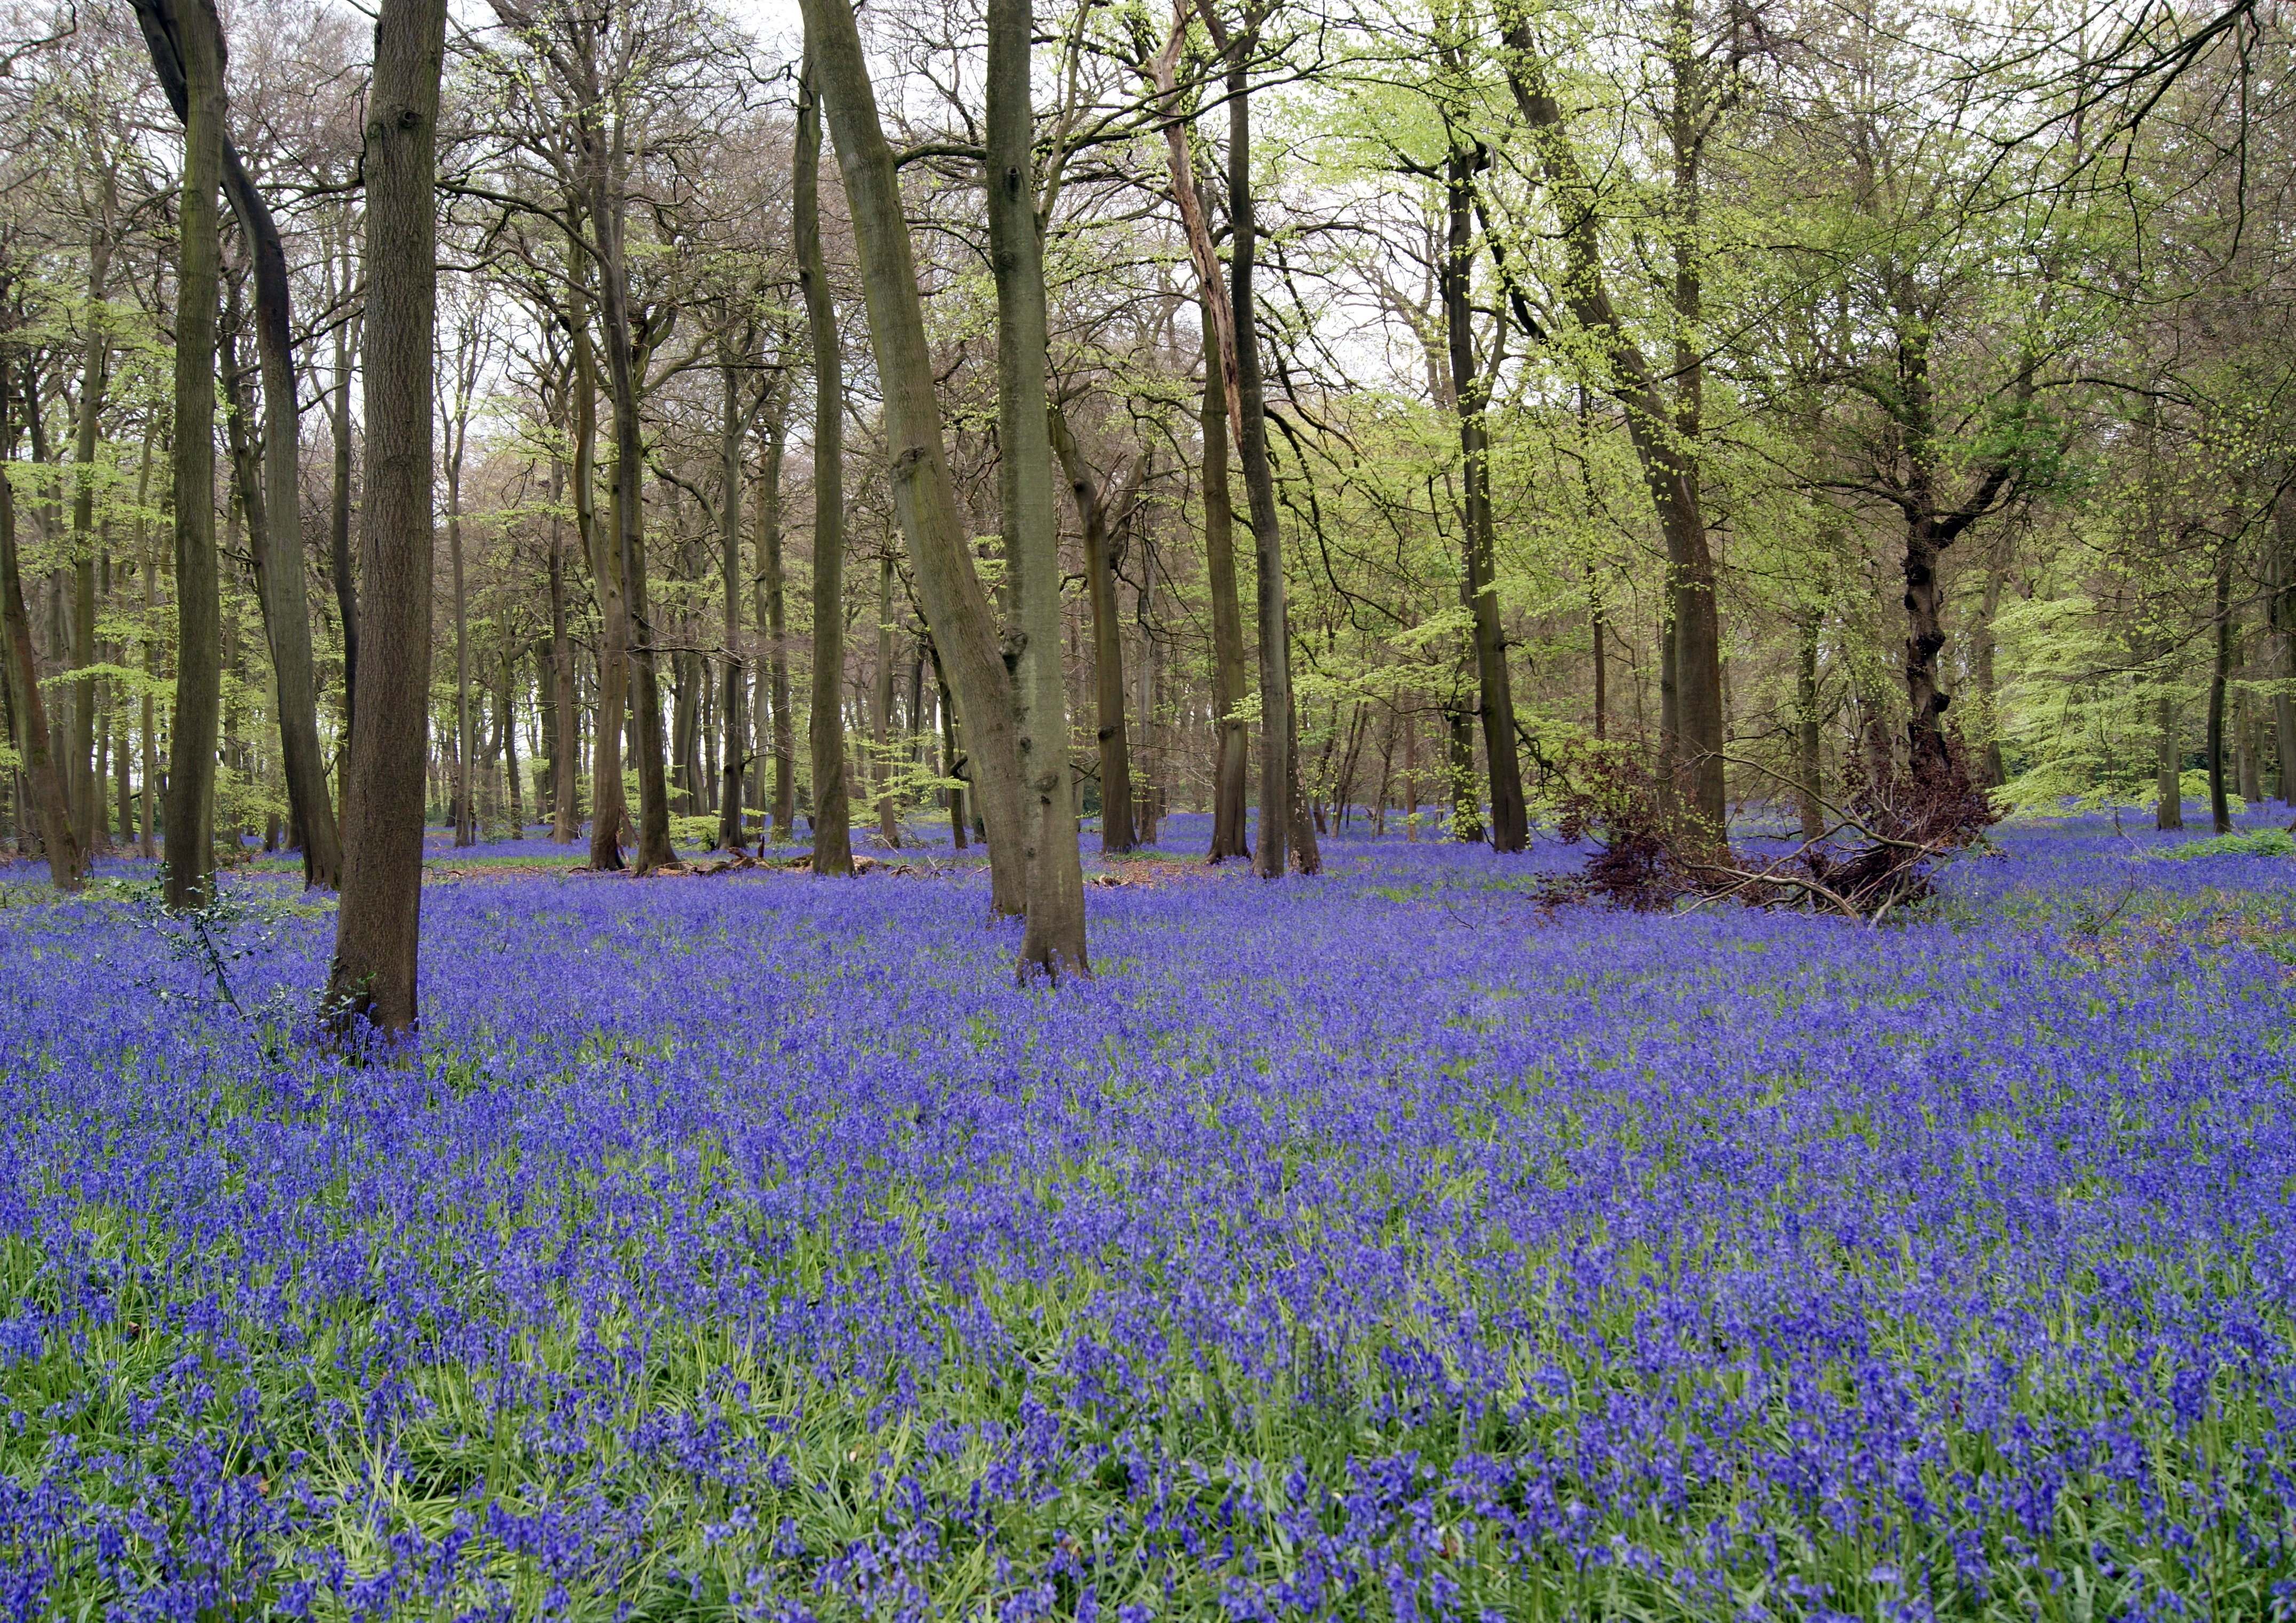 BLUEBELLS IN PARK WOOD by James Ashworth